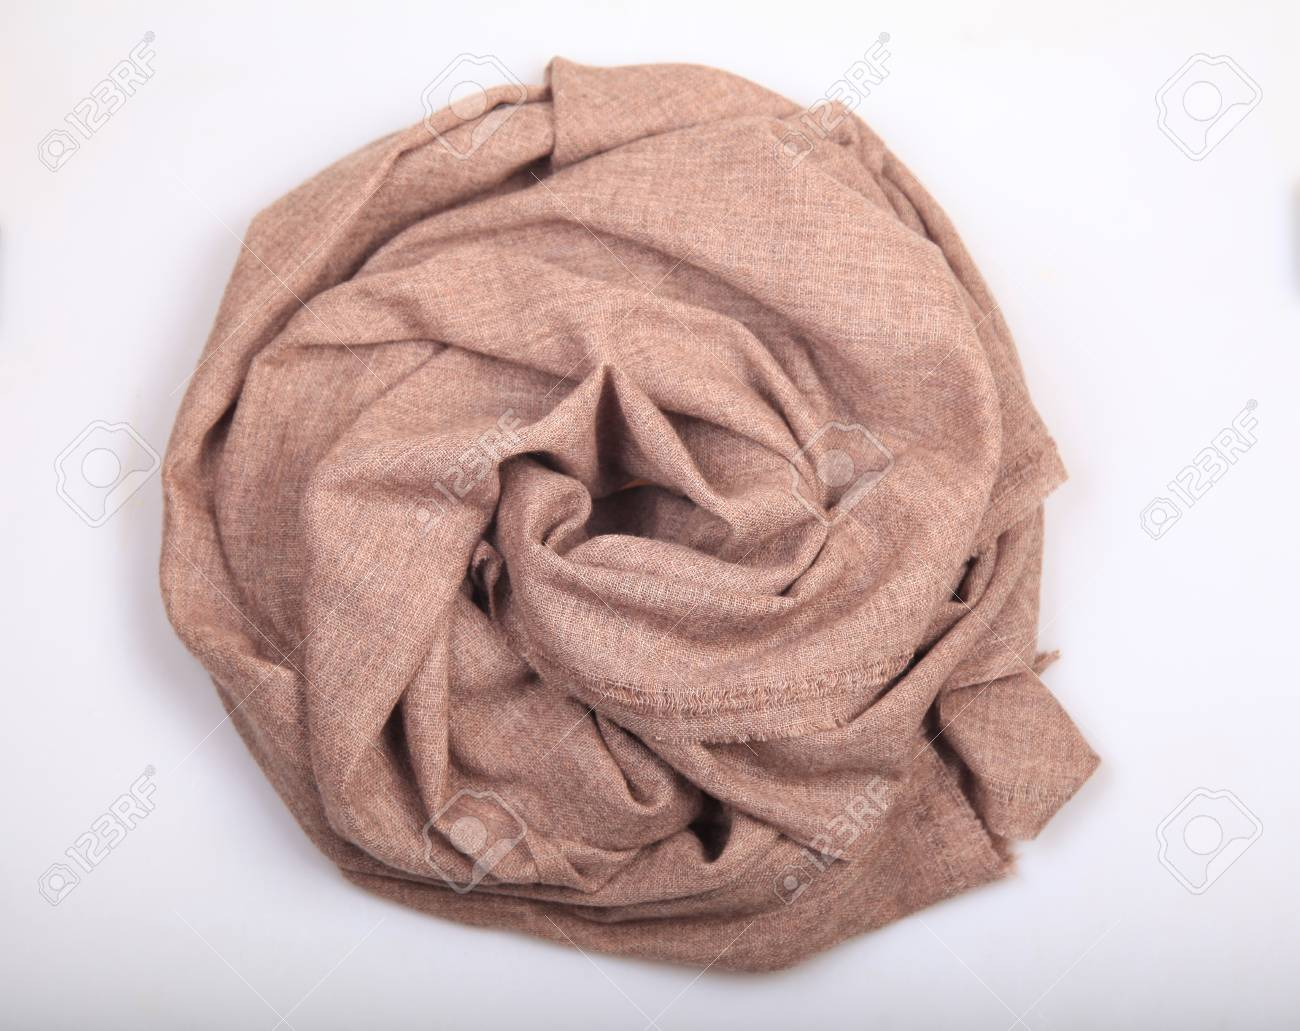 f61efa160 Light brown linen and cashmere scarf on white background, scarf top view .  Stock Photo